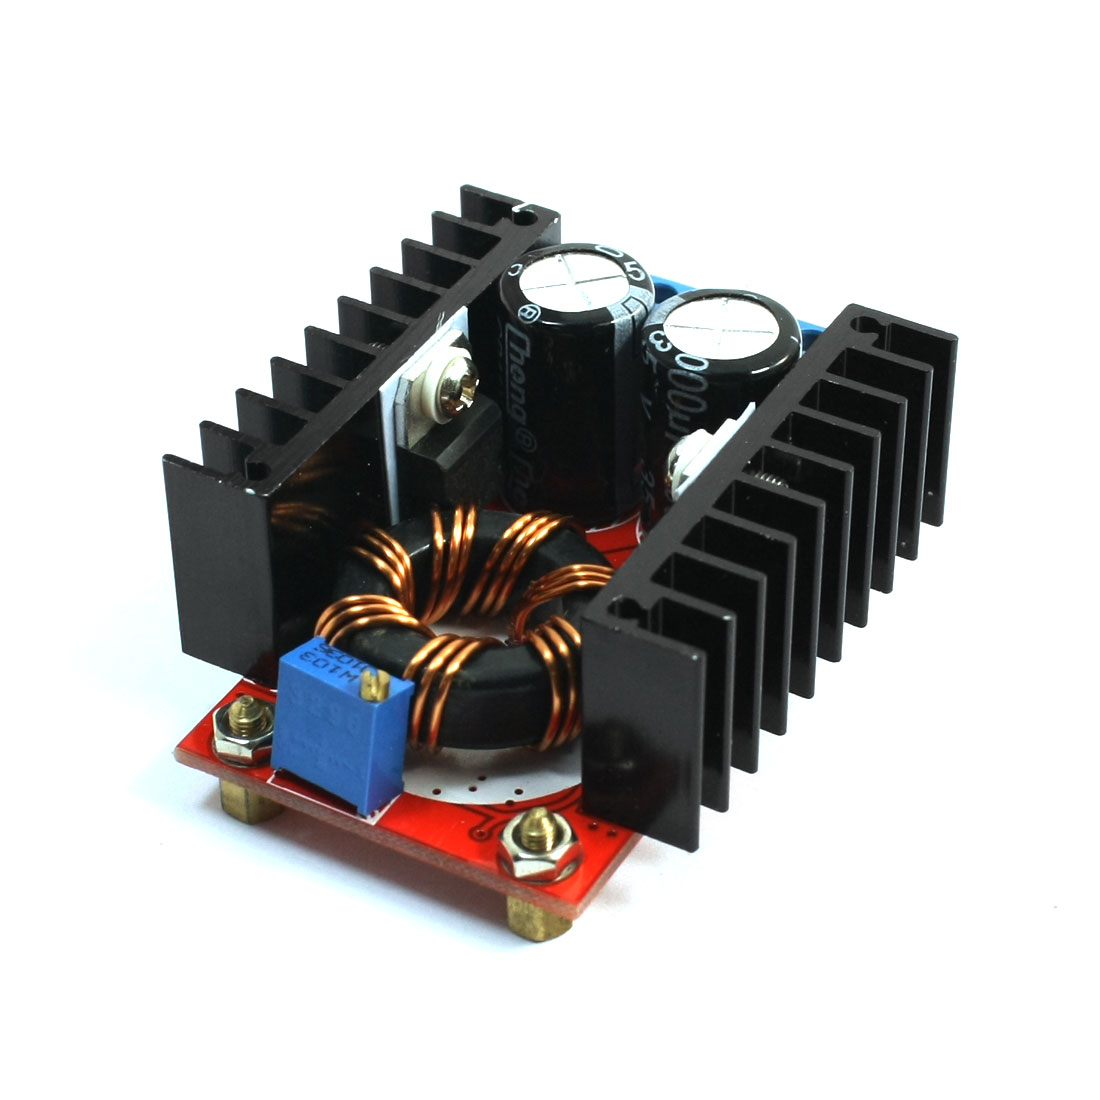 DC10-32V to DC12-35V 120W Set-up Adjustable Power Supply Boost Module 65x48x24mm